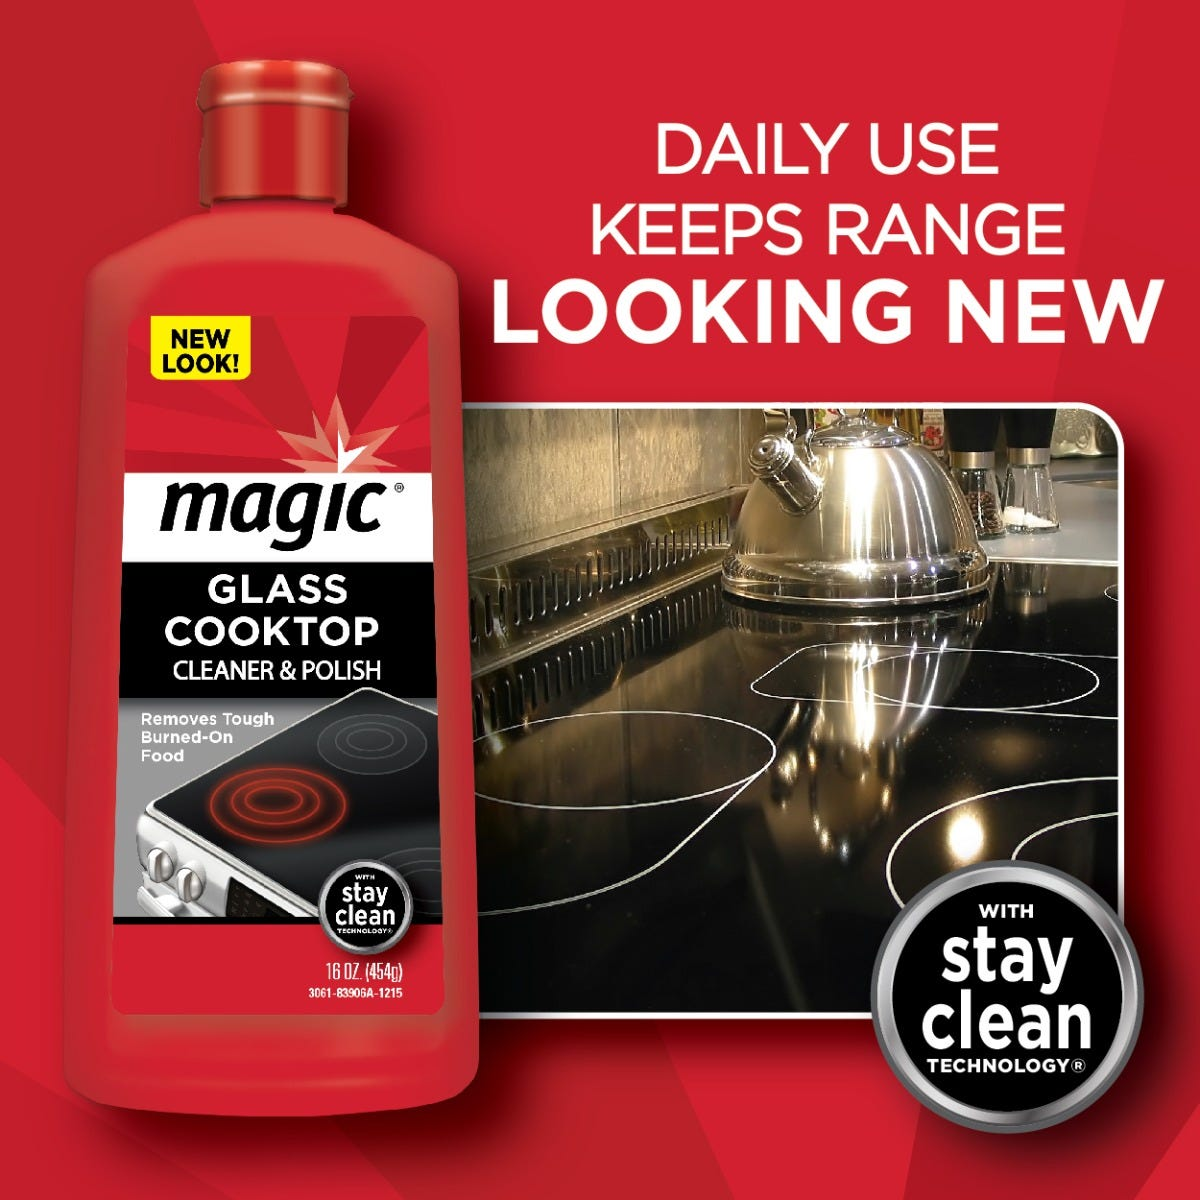 Magic Glass Cooktop Cleaner beauty